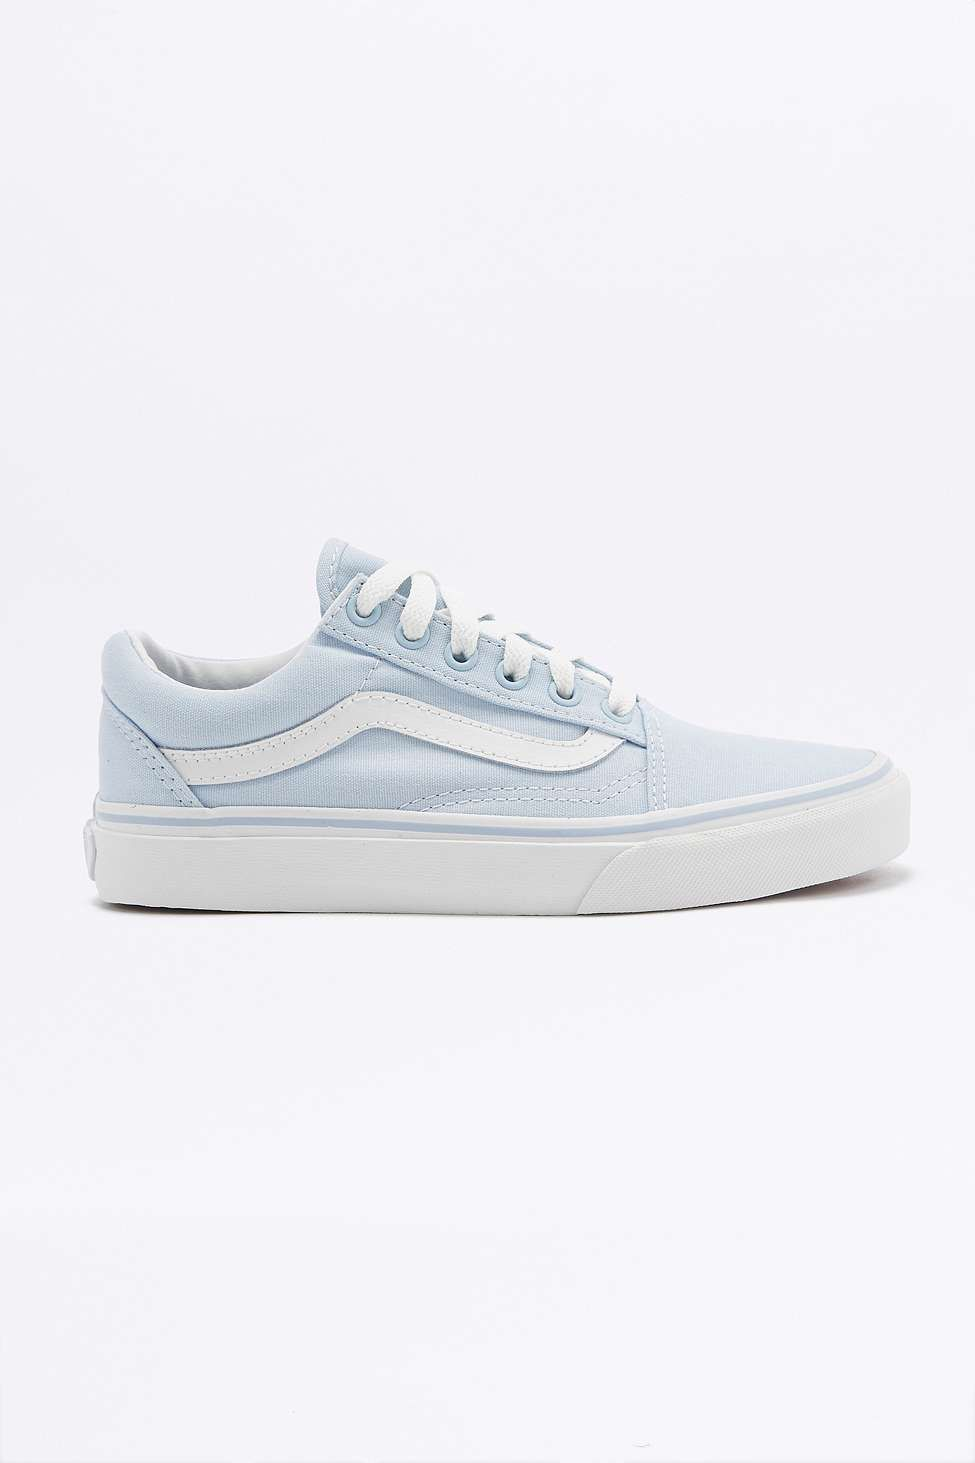 Baby TrainersShoes Blue Old Skool Vans doeBrxC